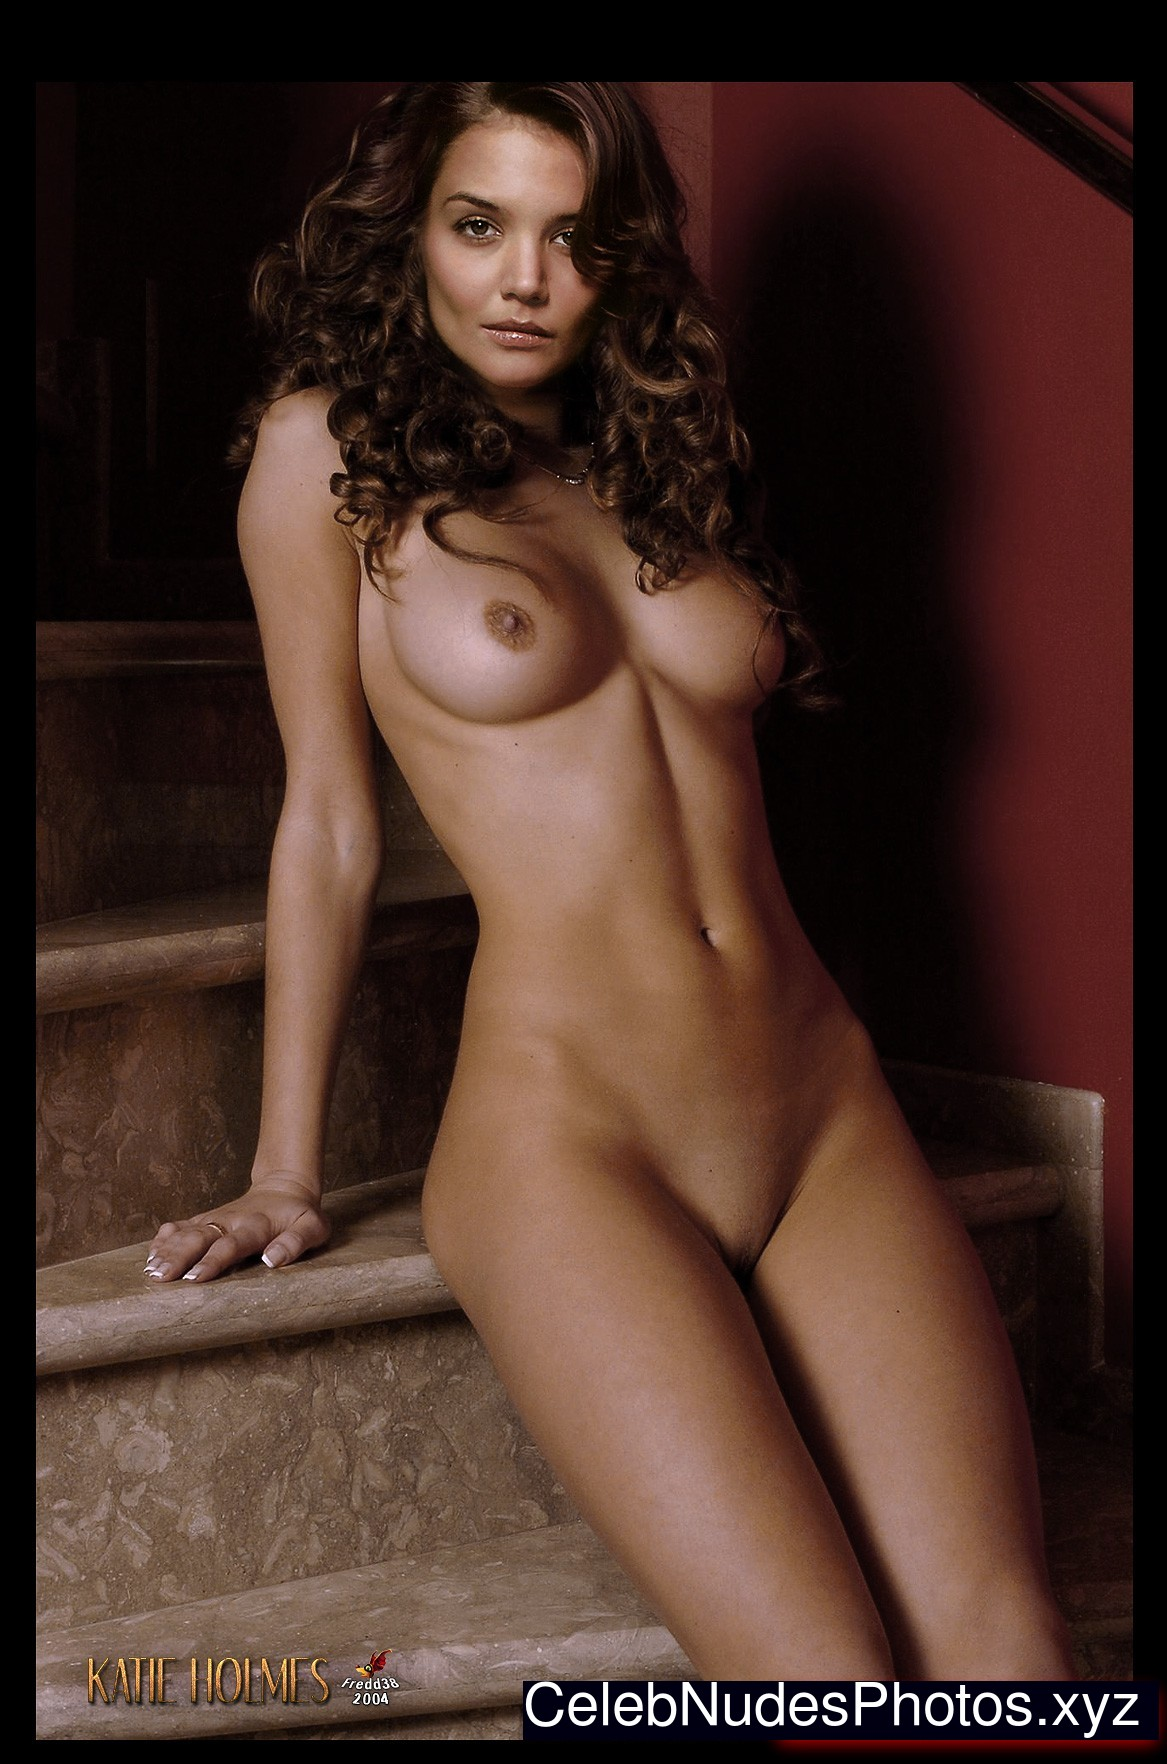 Katie Holmes Nude Celeb Pic sexy 30